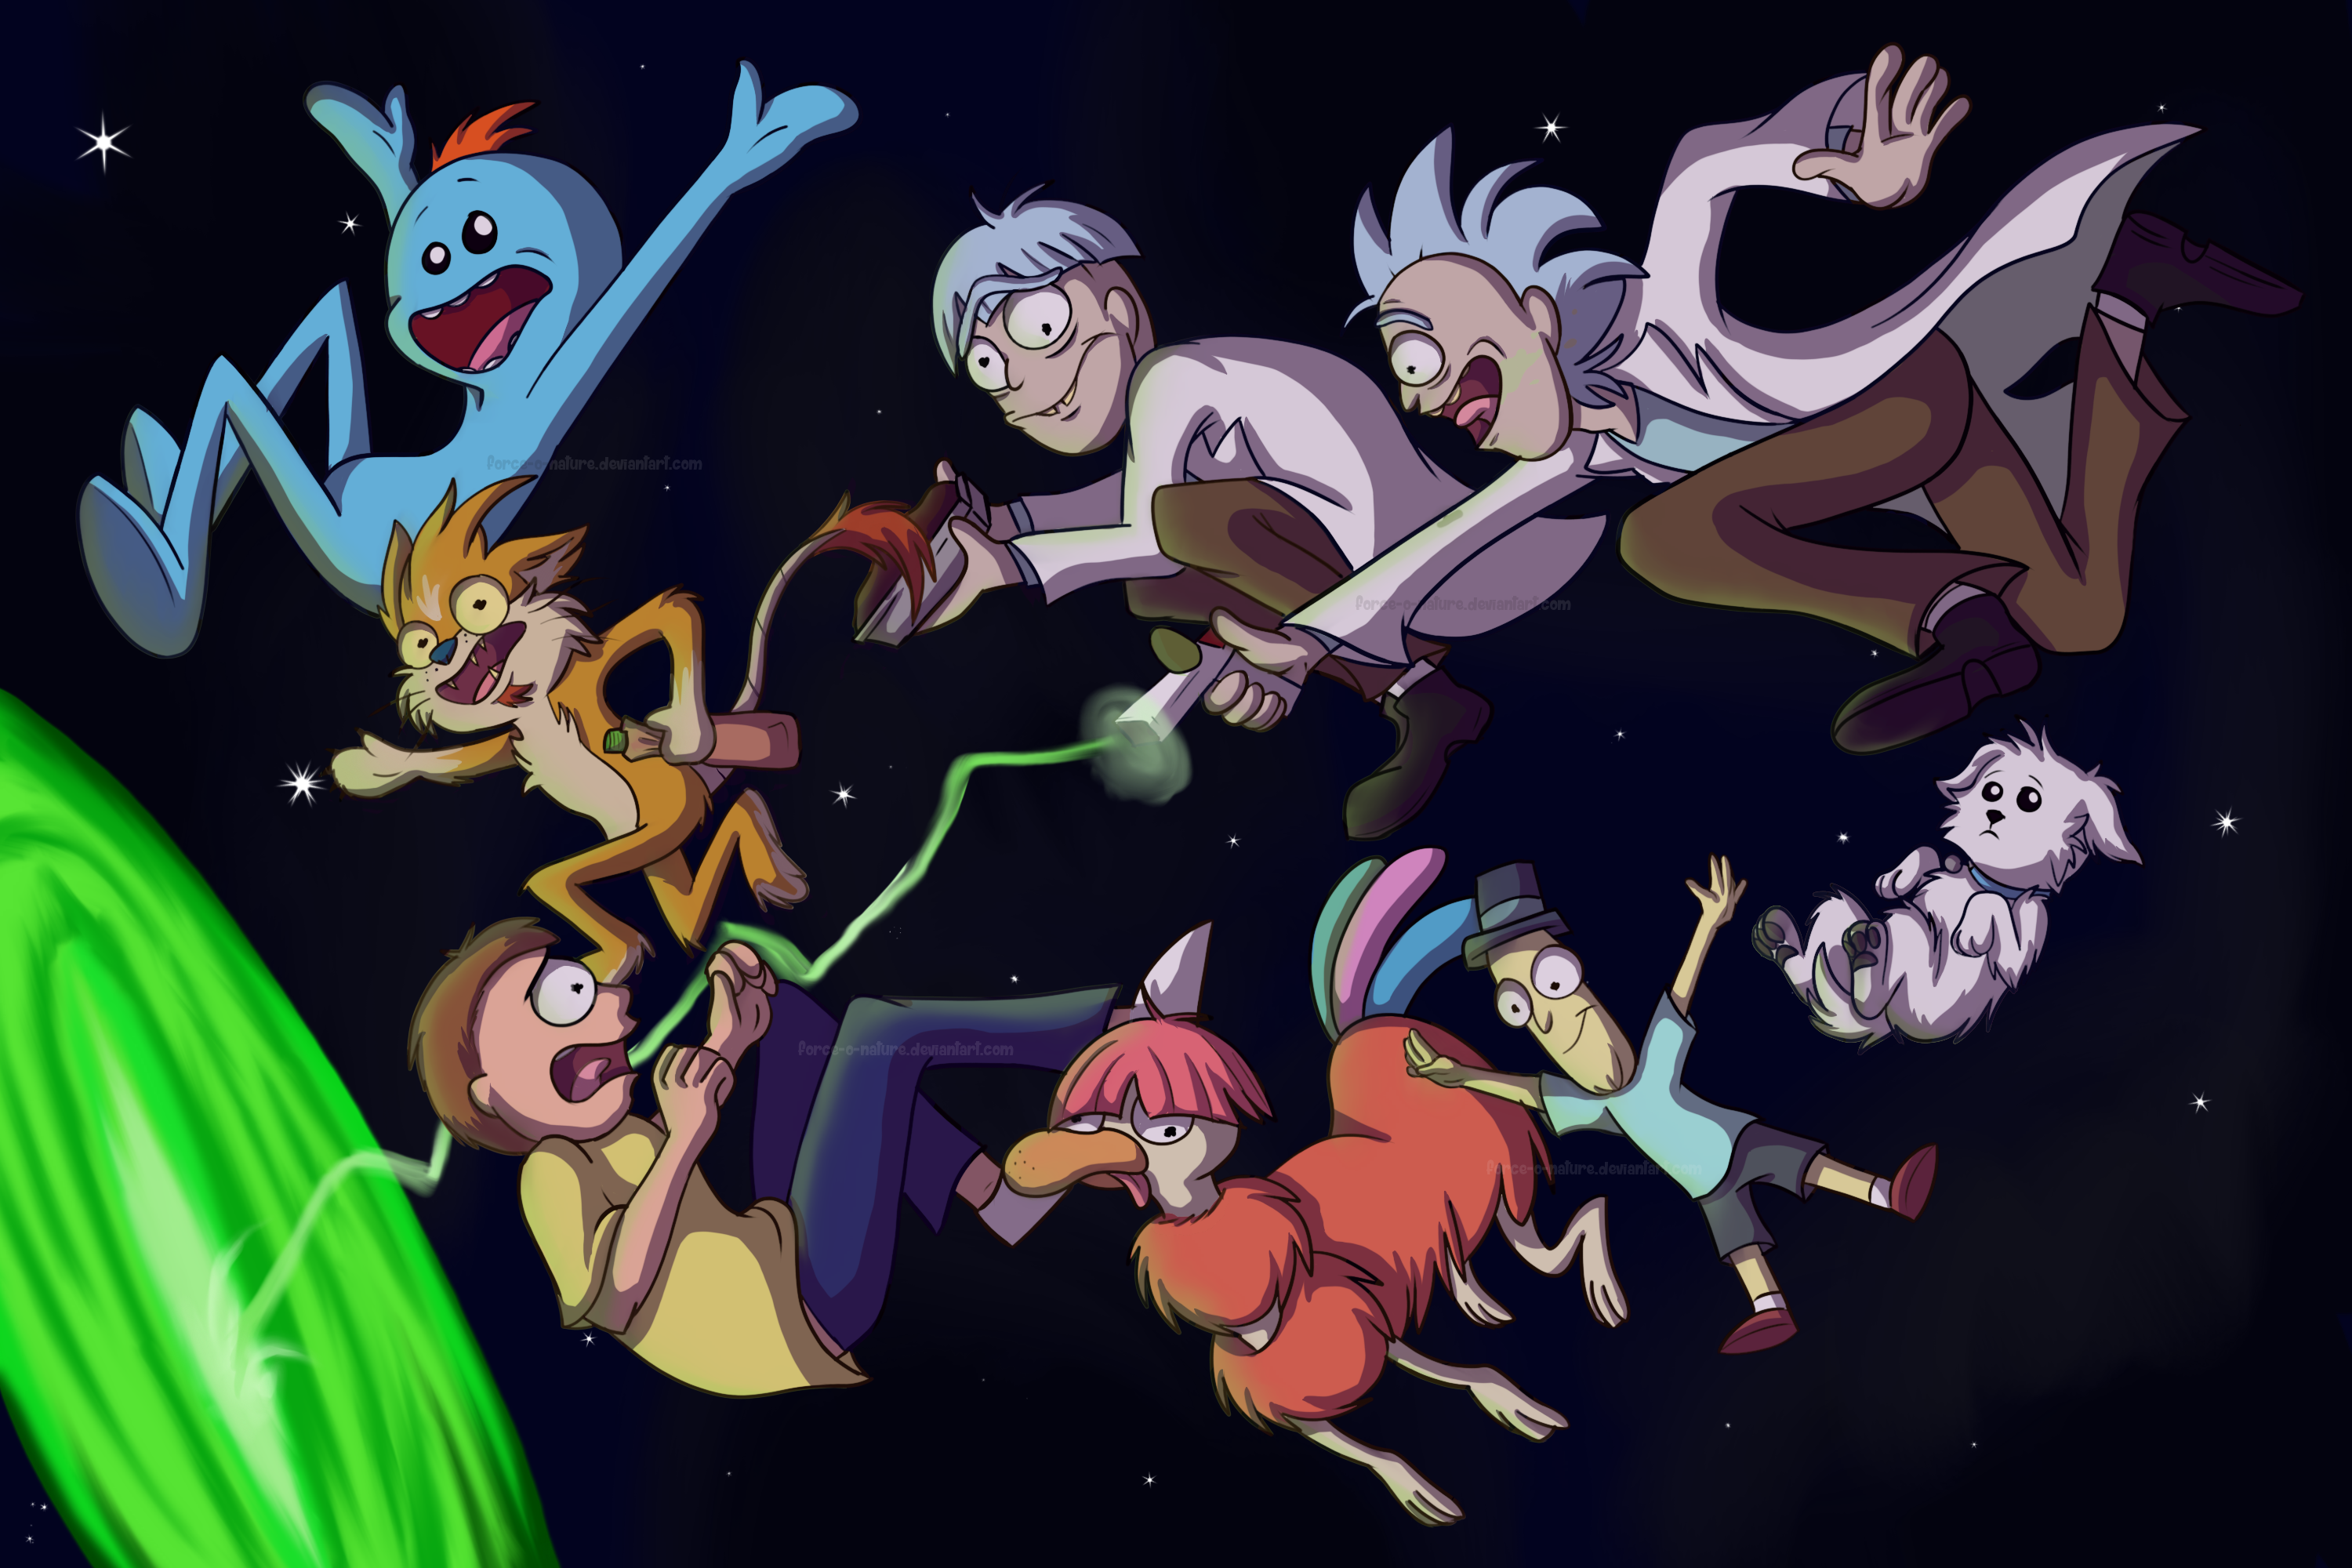 Rick And Morty Freebie Hd Wallpaper By Star Tracer On Deviantart